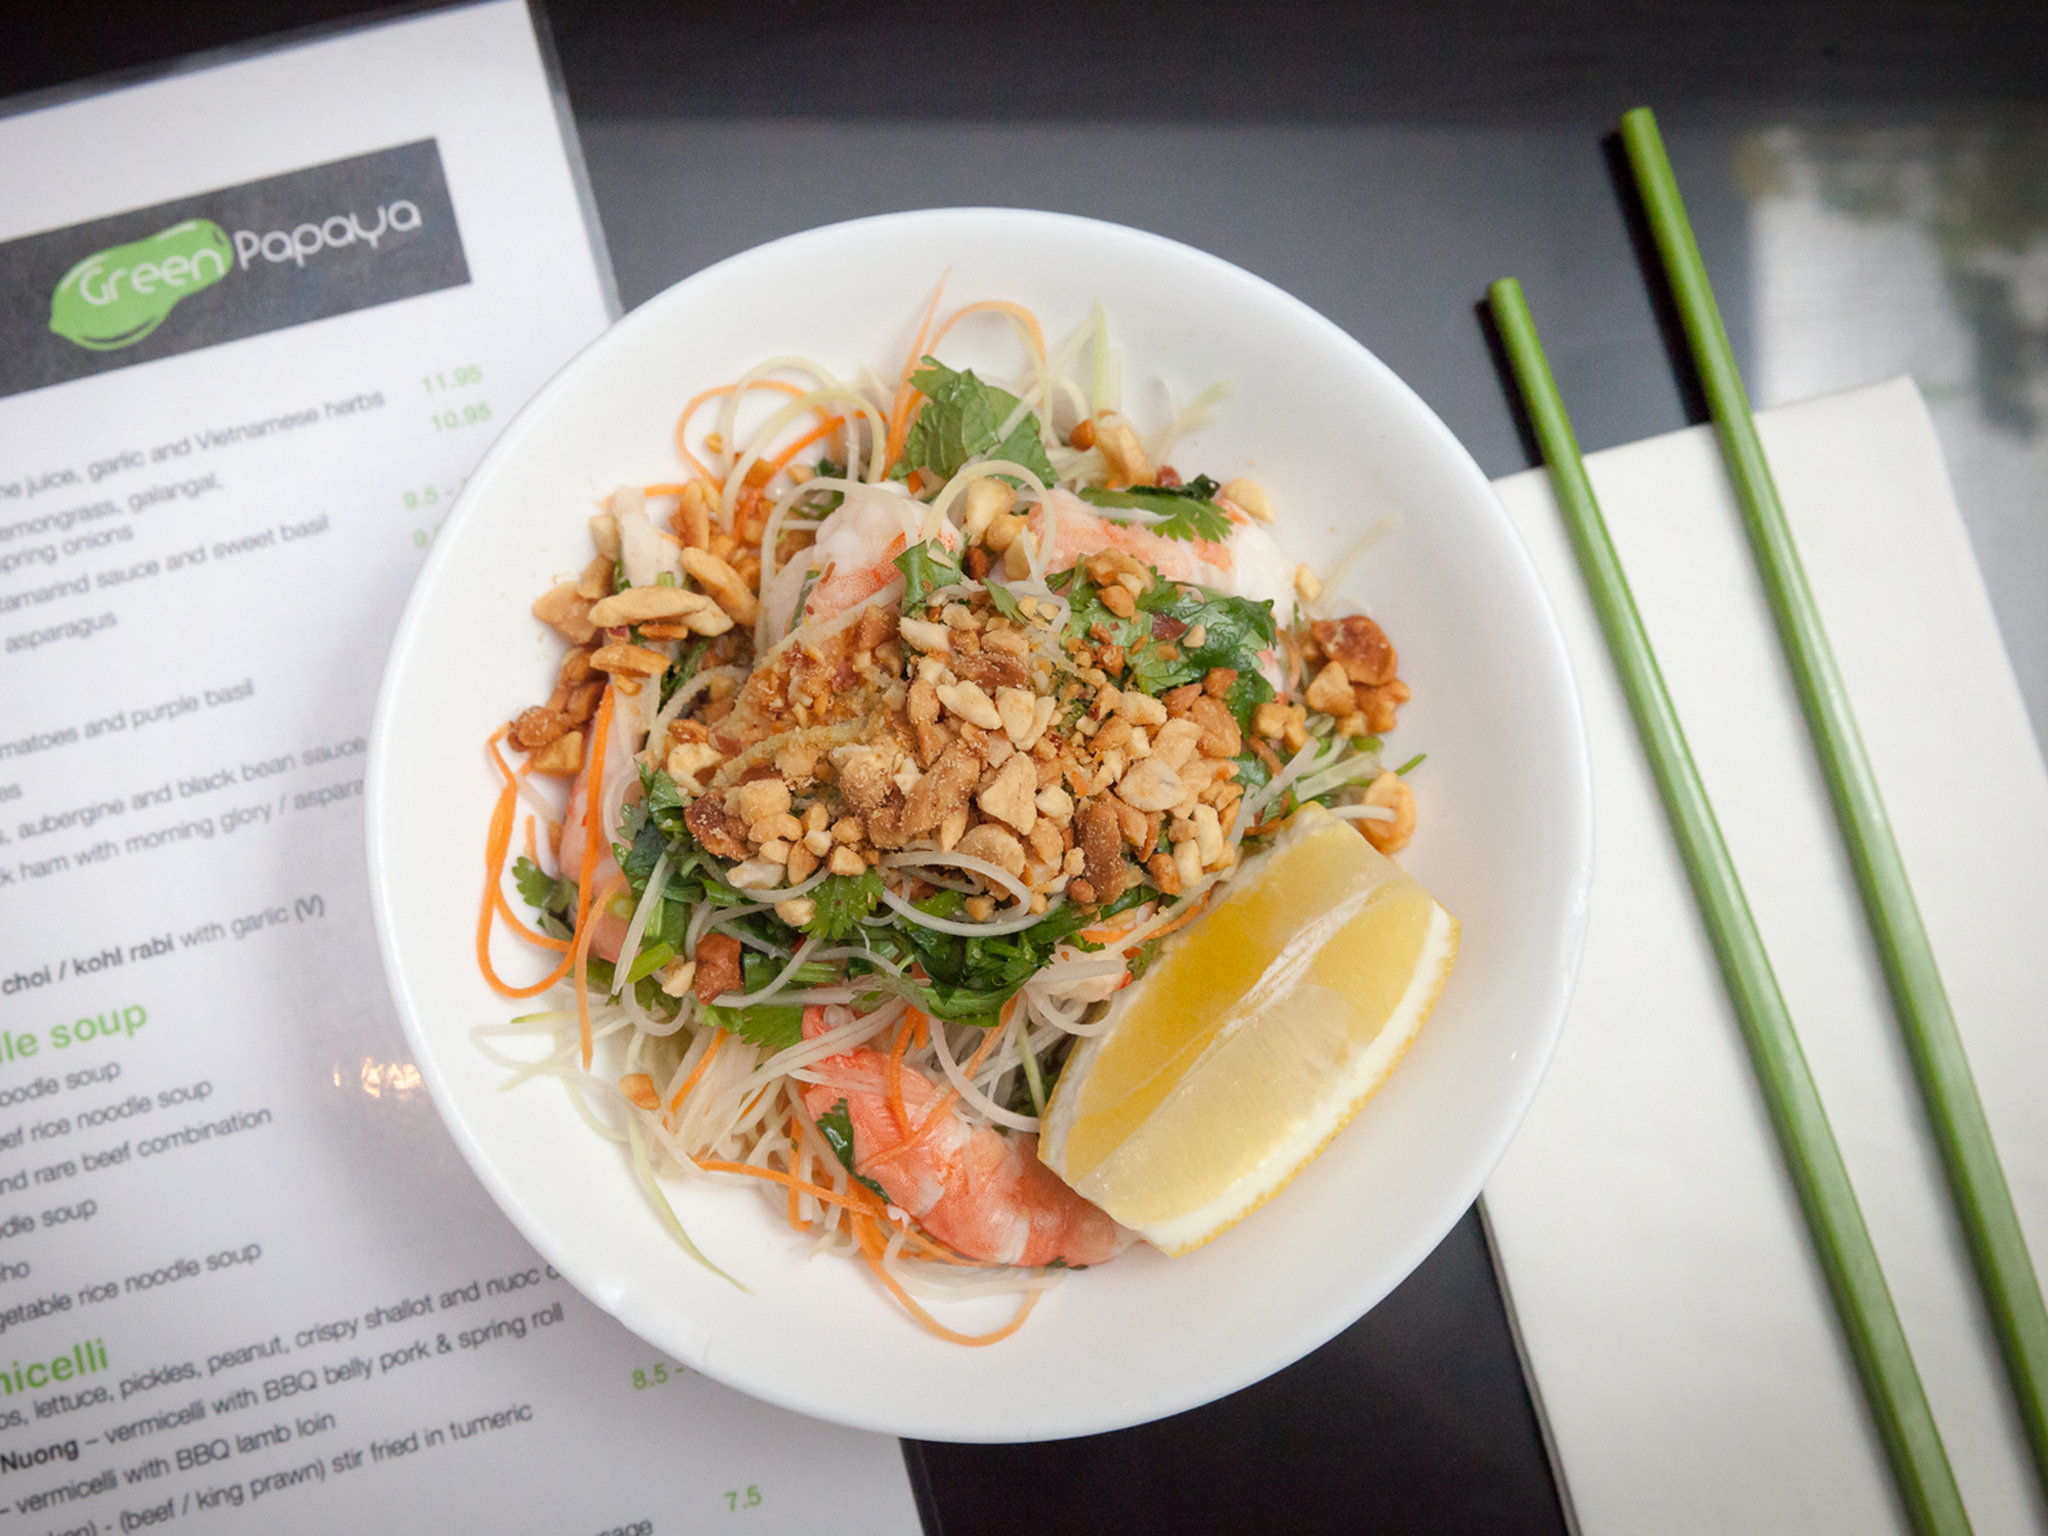 The 100 best cheap eats in London, Green Papaya